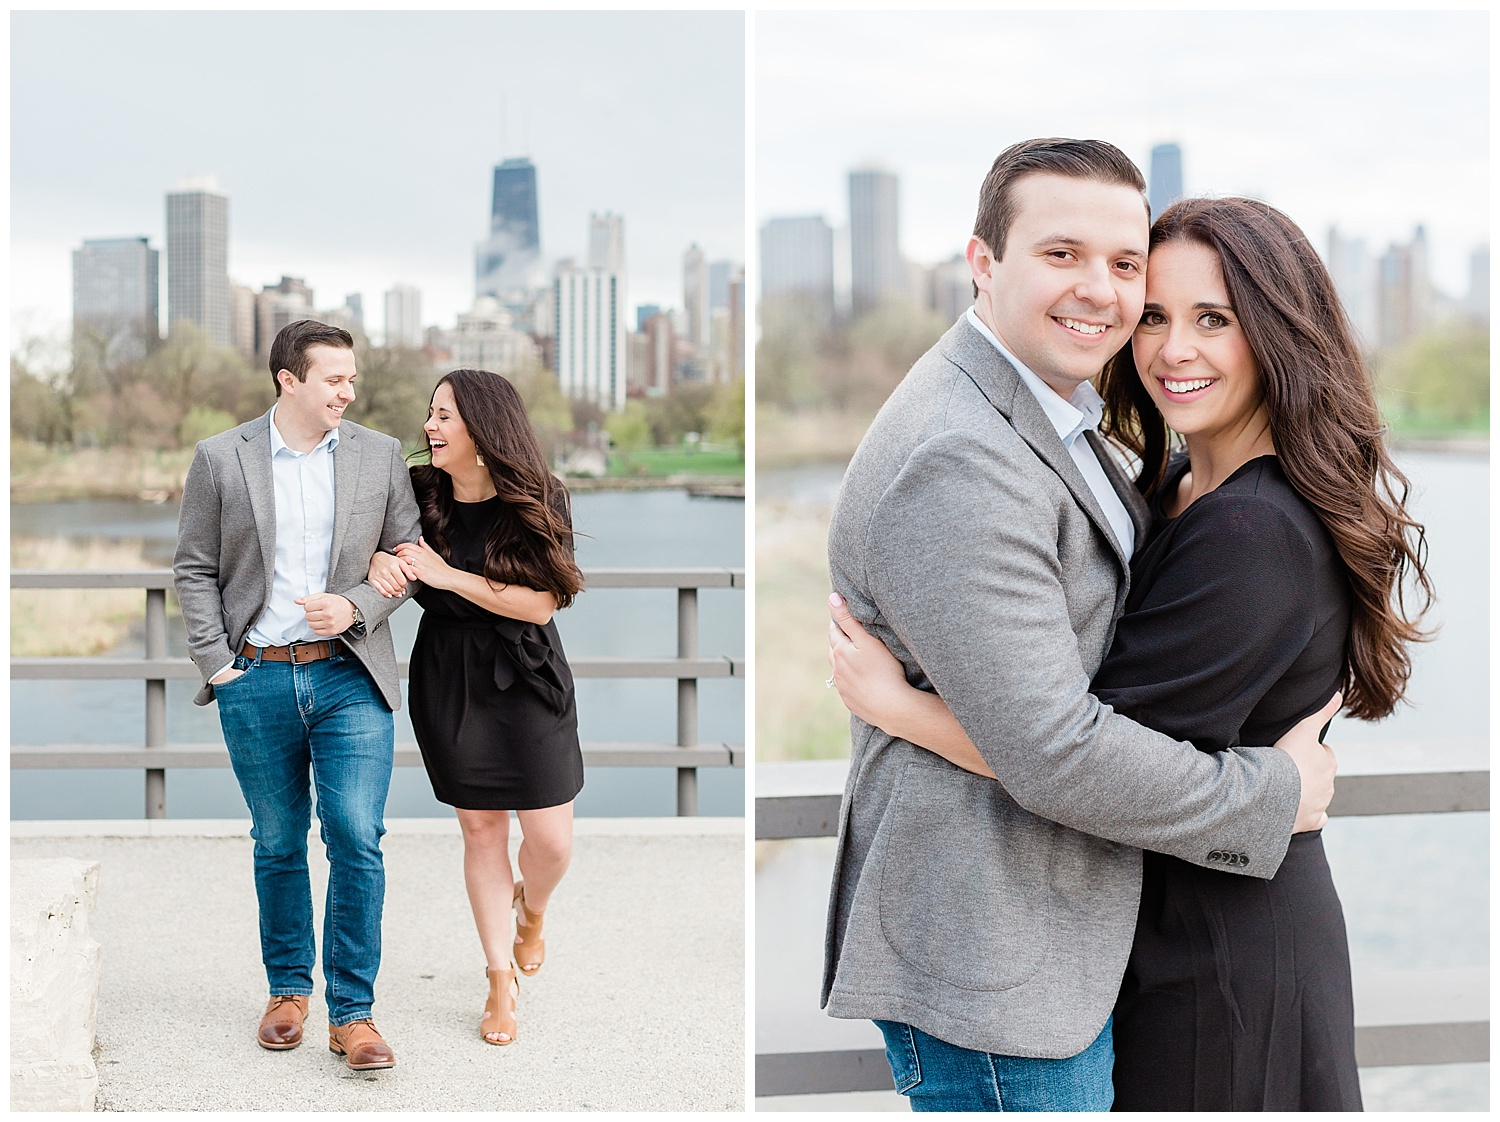 classic-downtown-chicago-engagement-session-kristen-cloyd-photography_0007.jpg